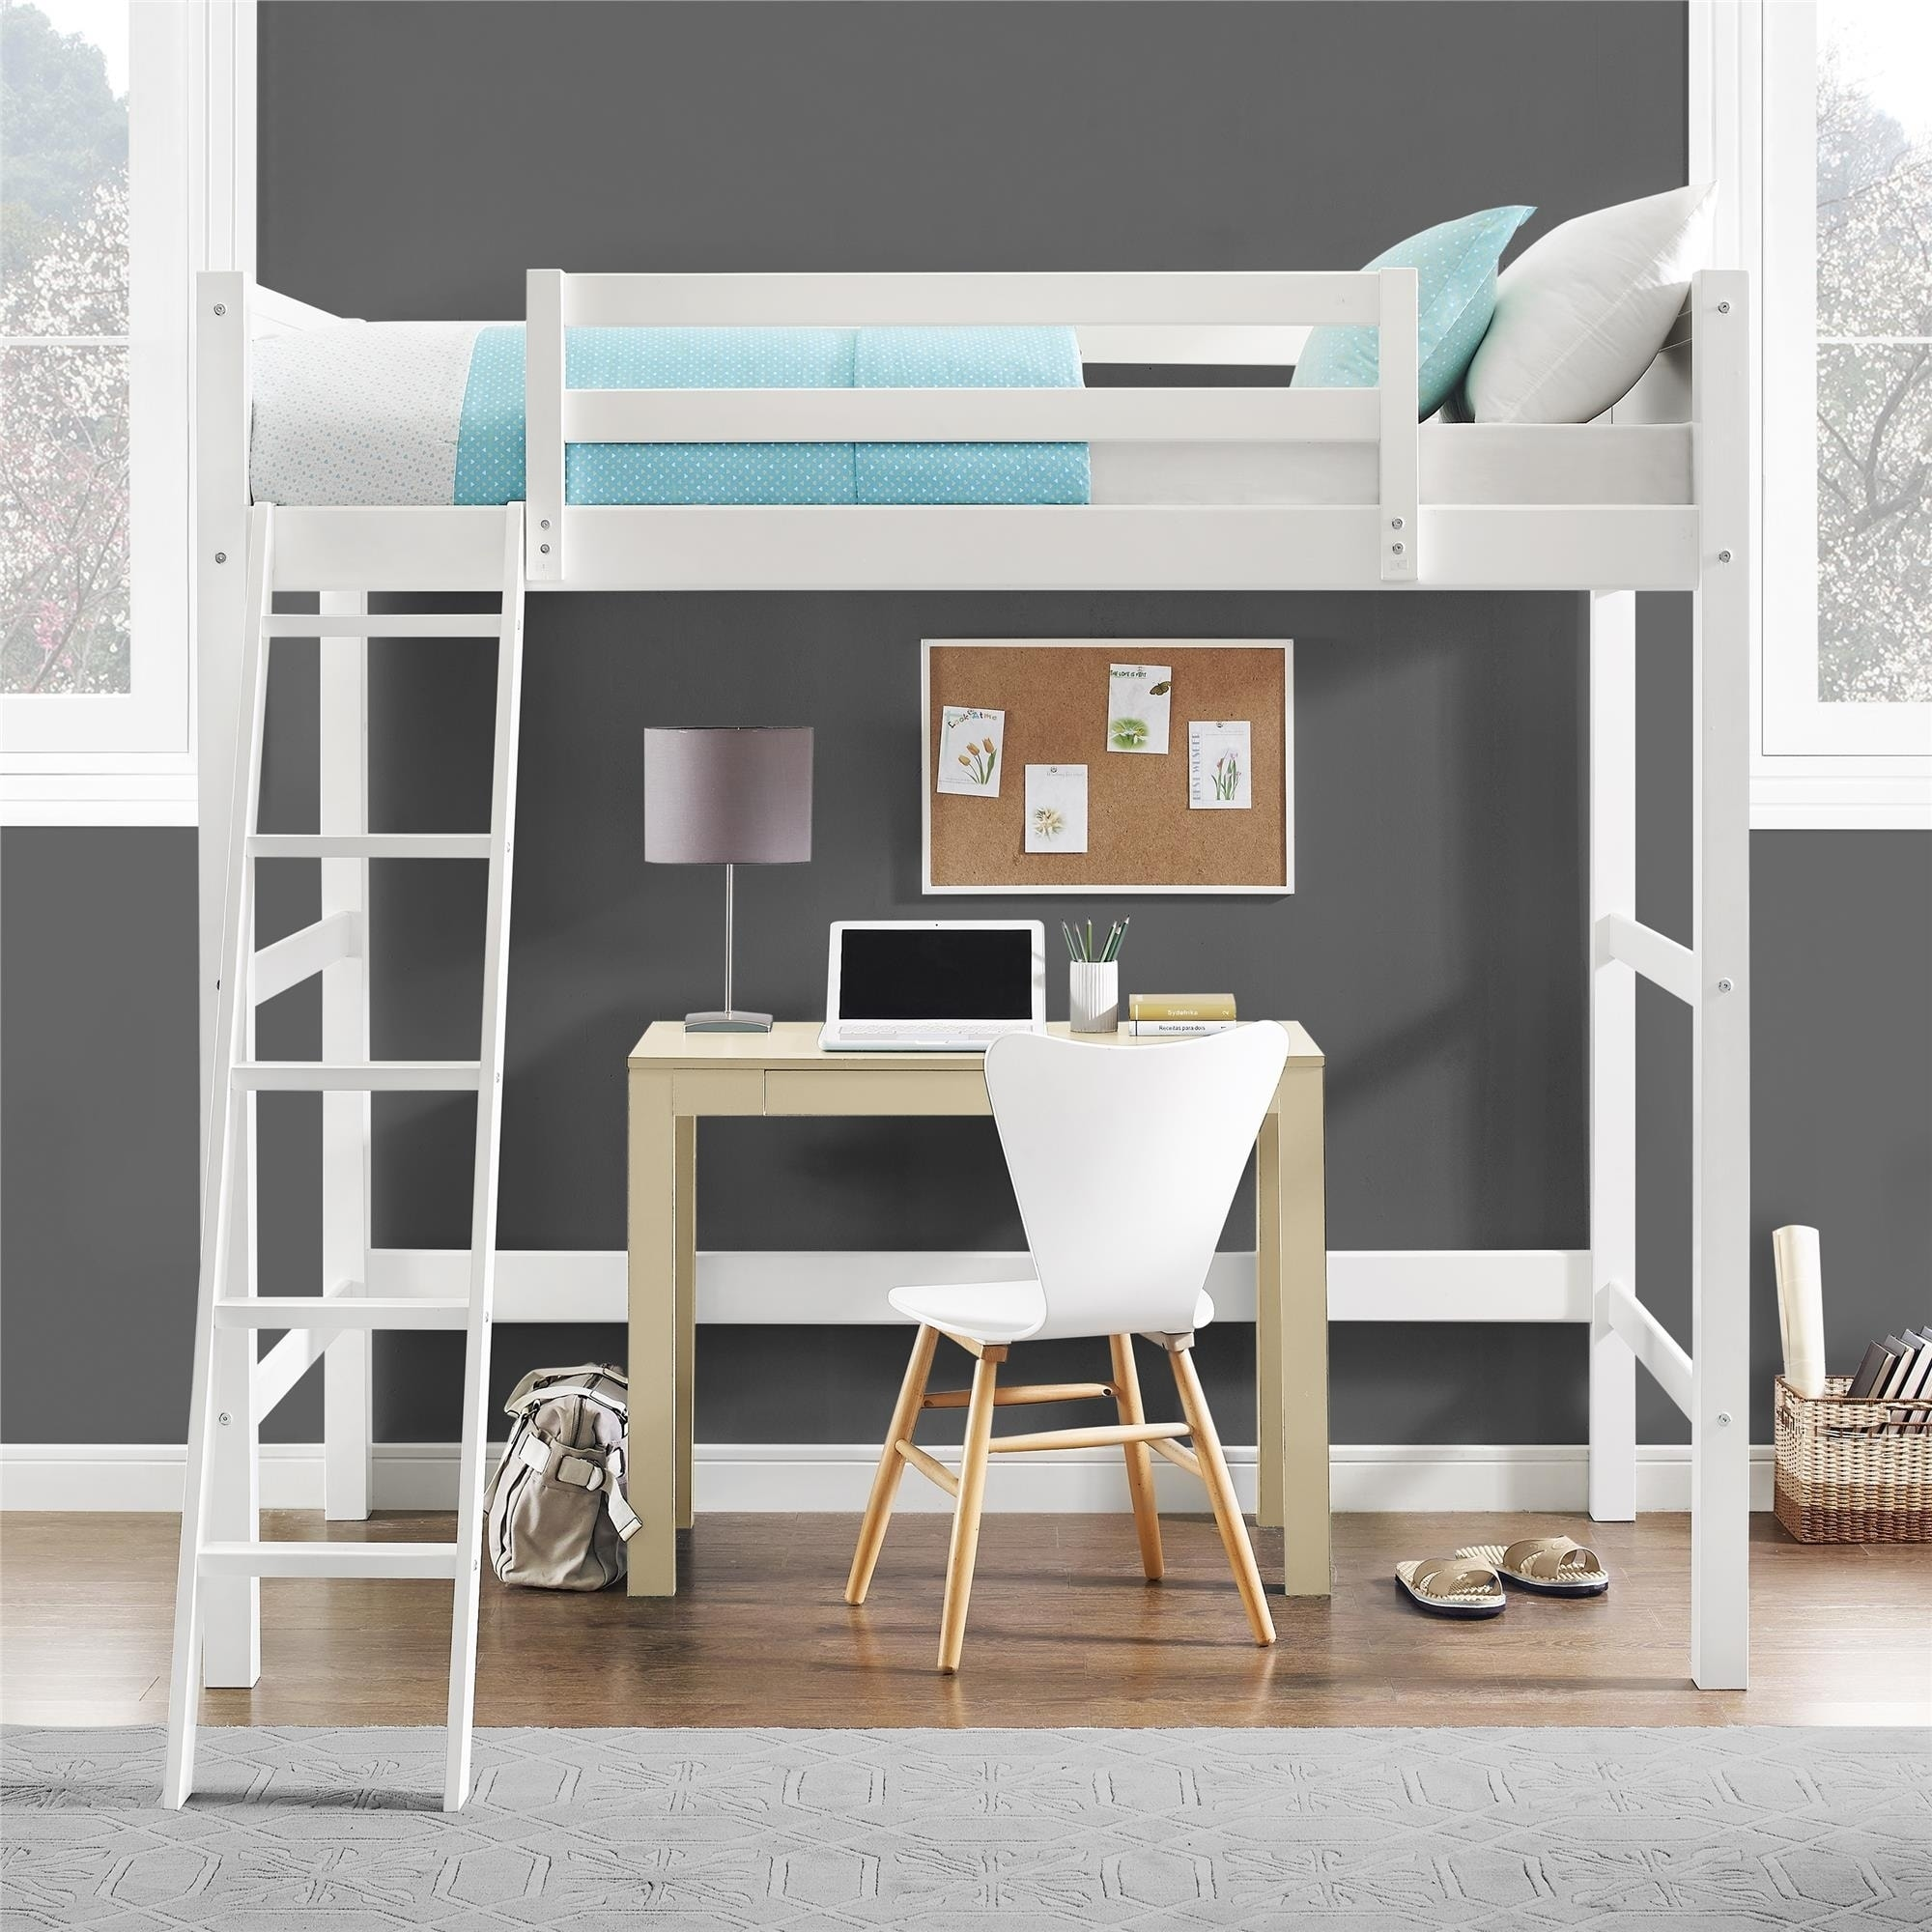 Childrens Beds With Pull Out Bed Underneath Buy Loft Bed Kids Toddler Beds Online At Overstock Our Best